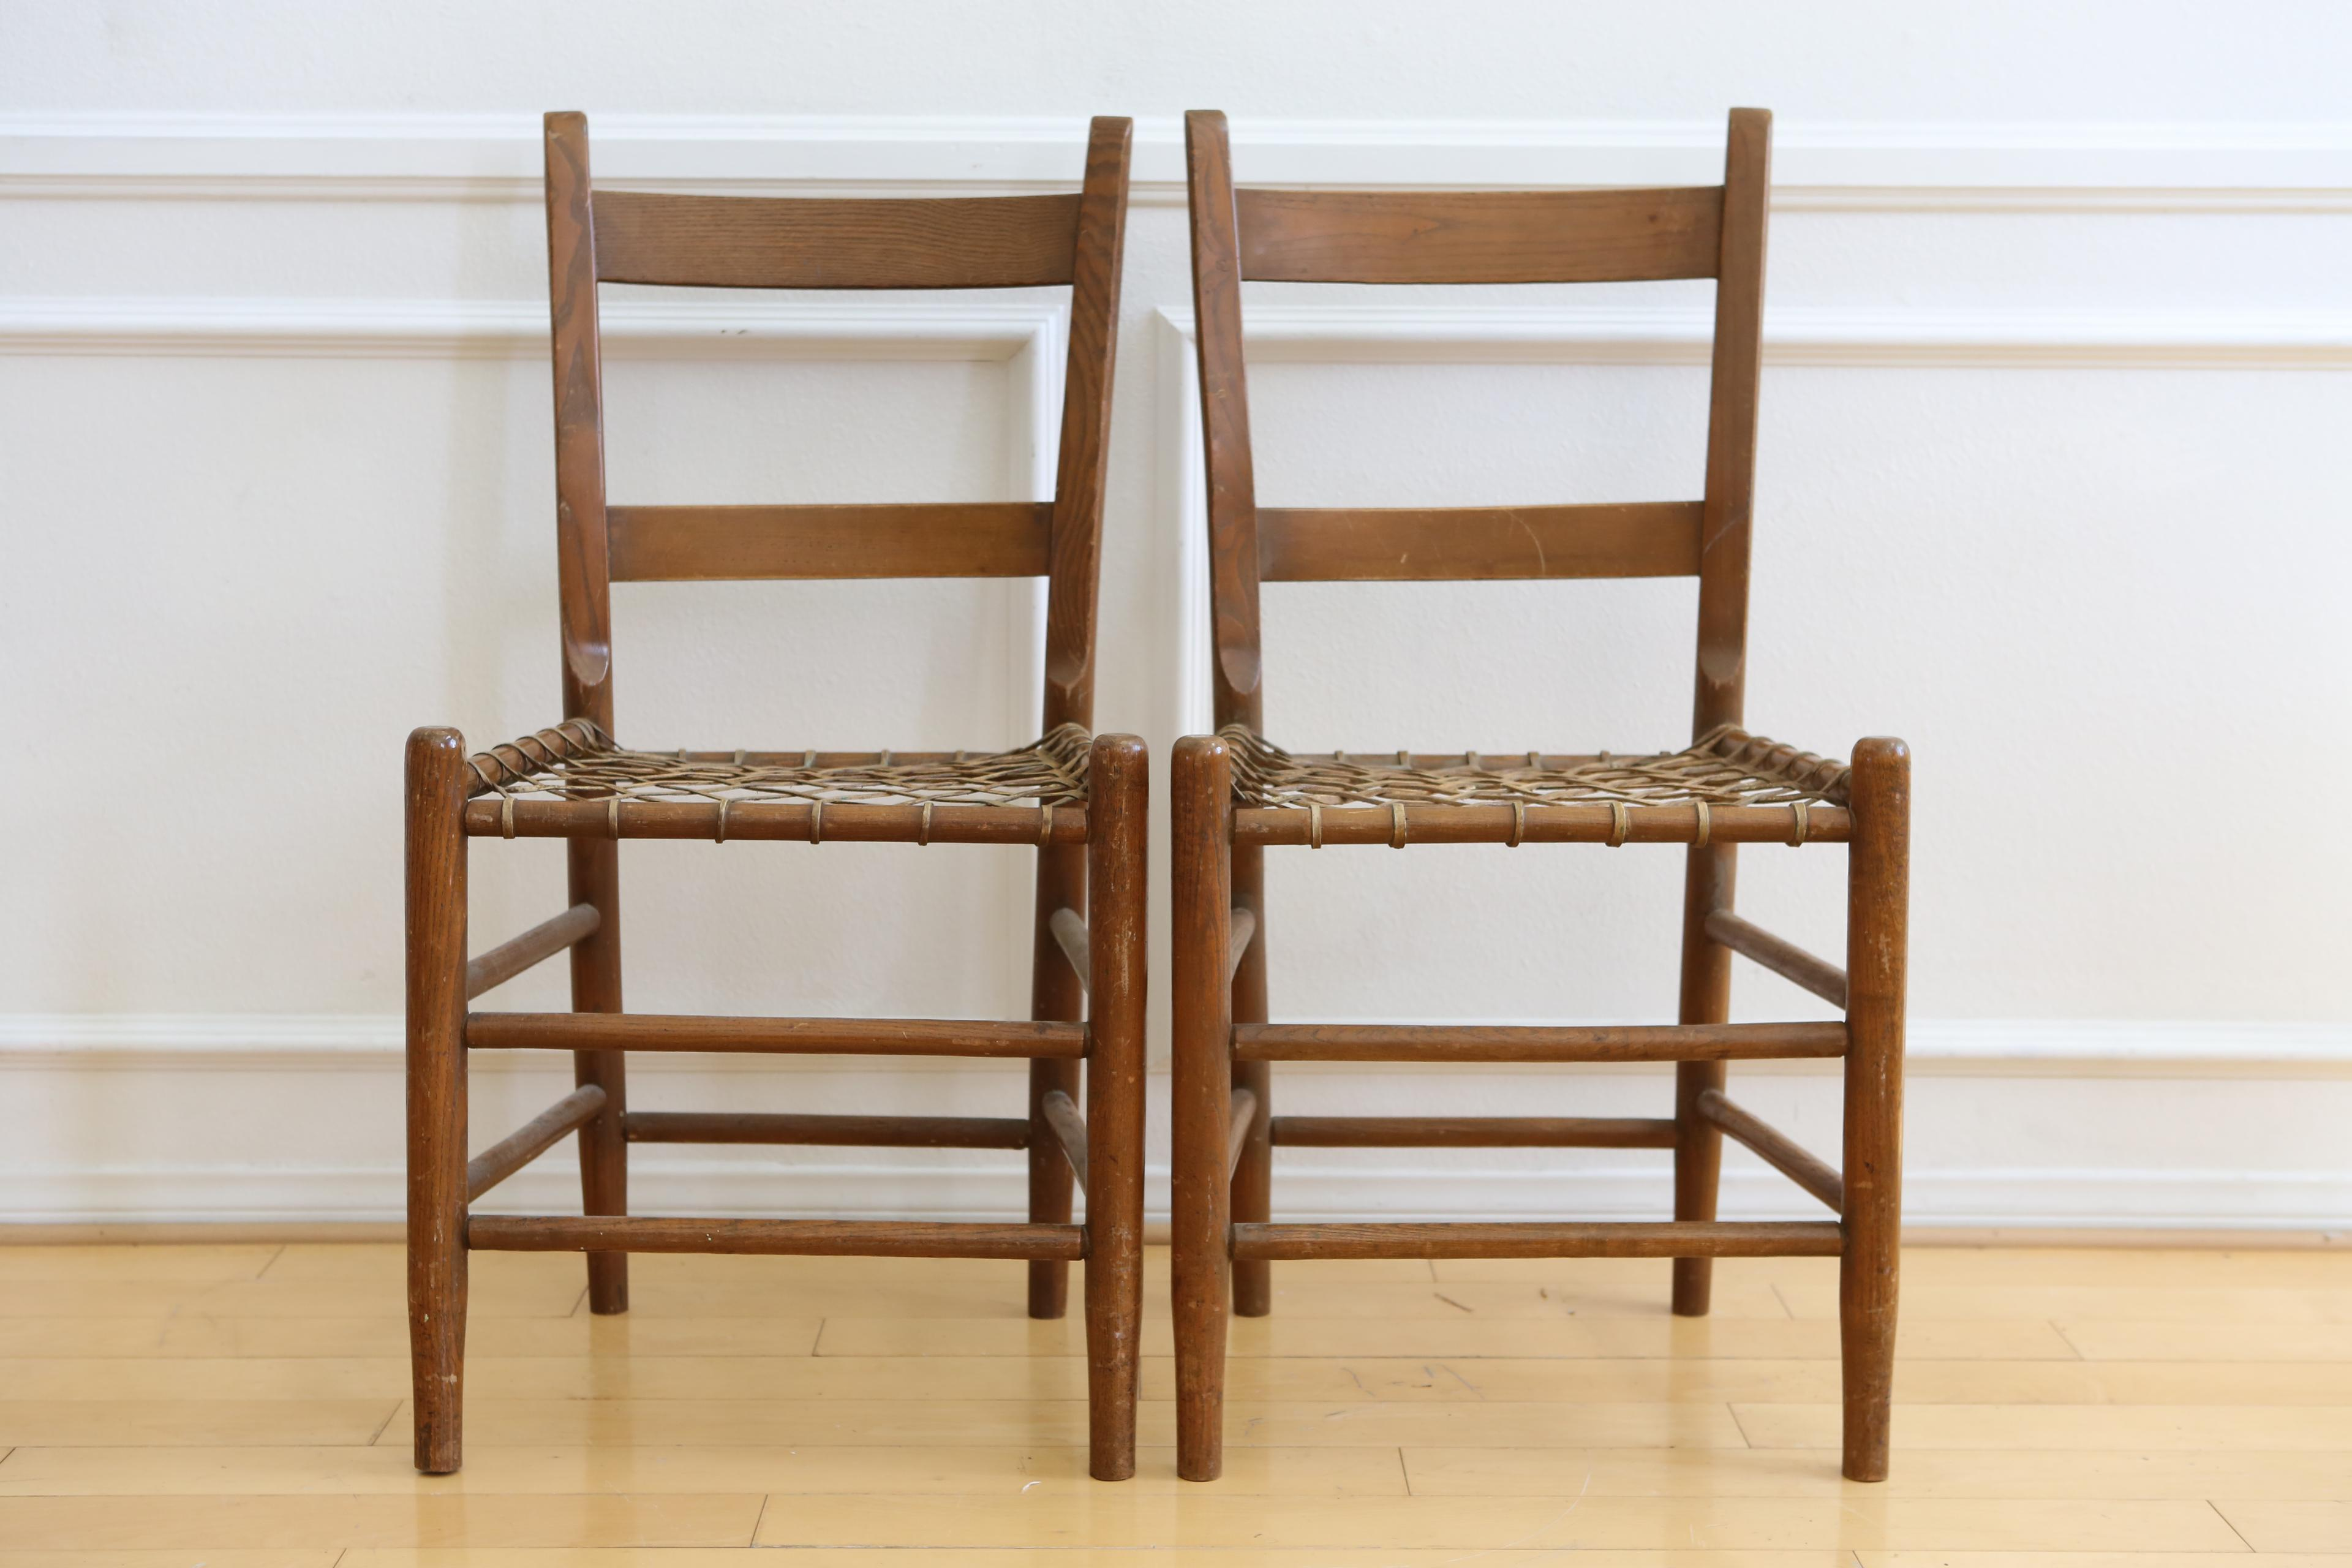 19th C Vintage Rustic Primitive Rawhide Woven Chair   A Pair   Image 2 Of 11